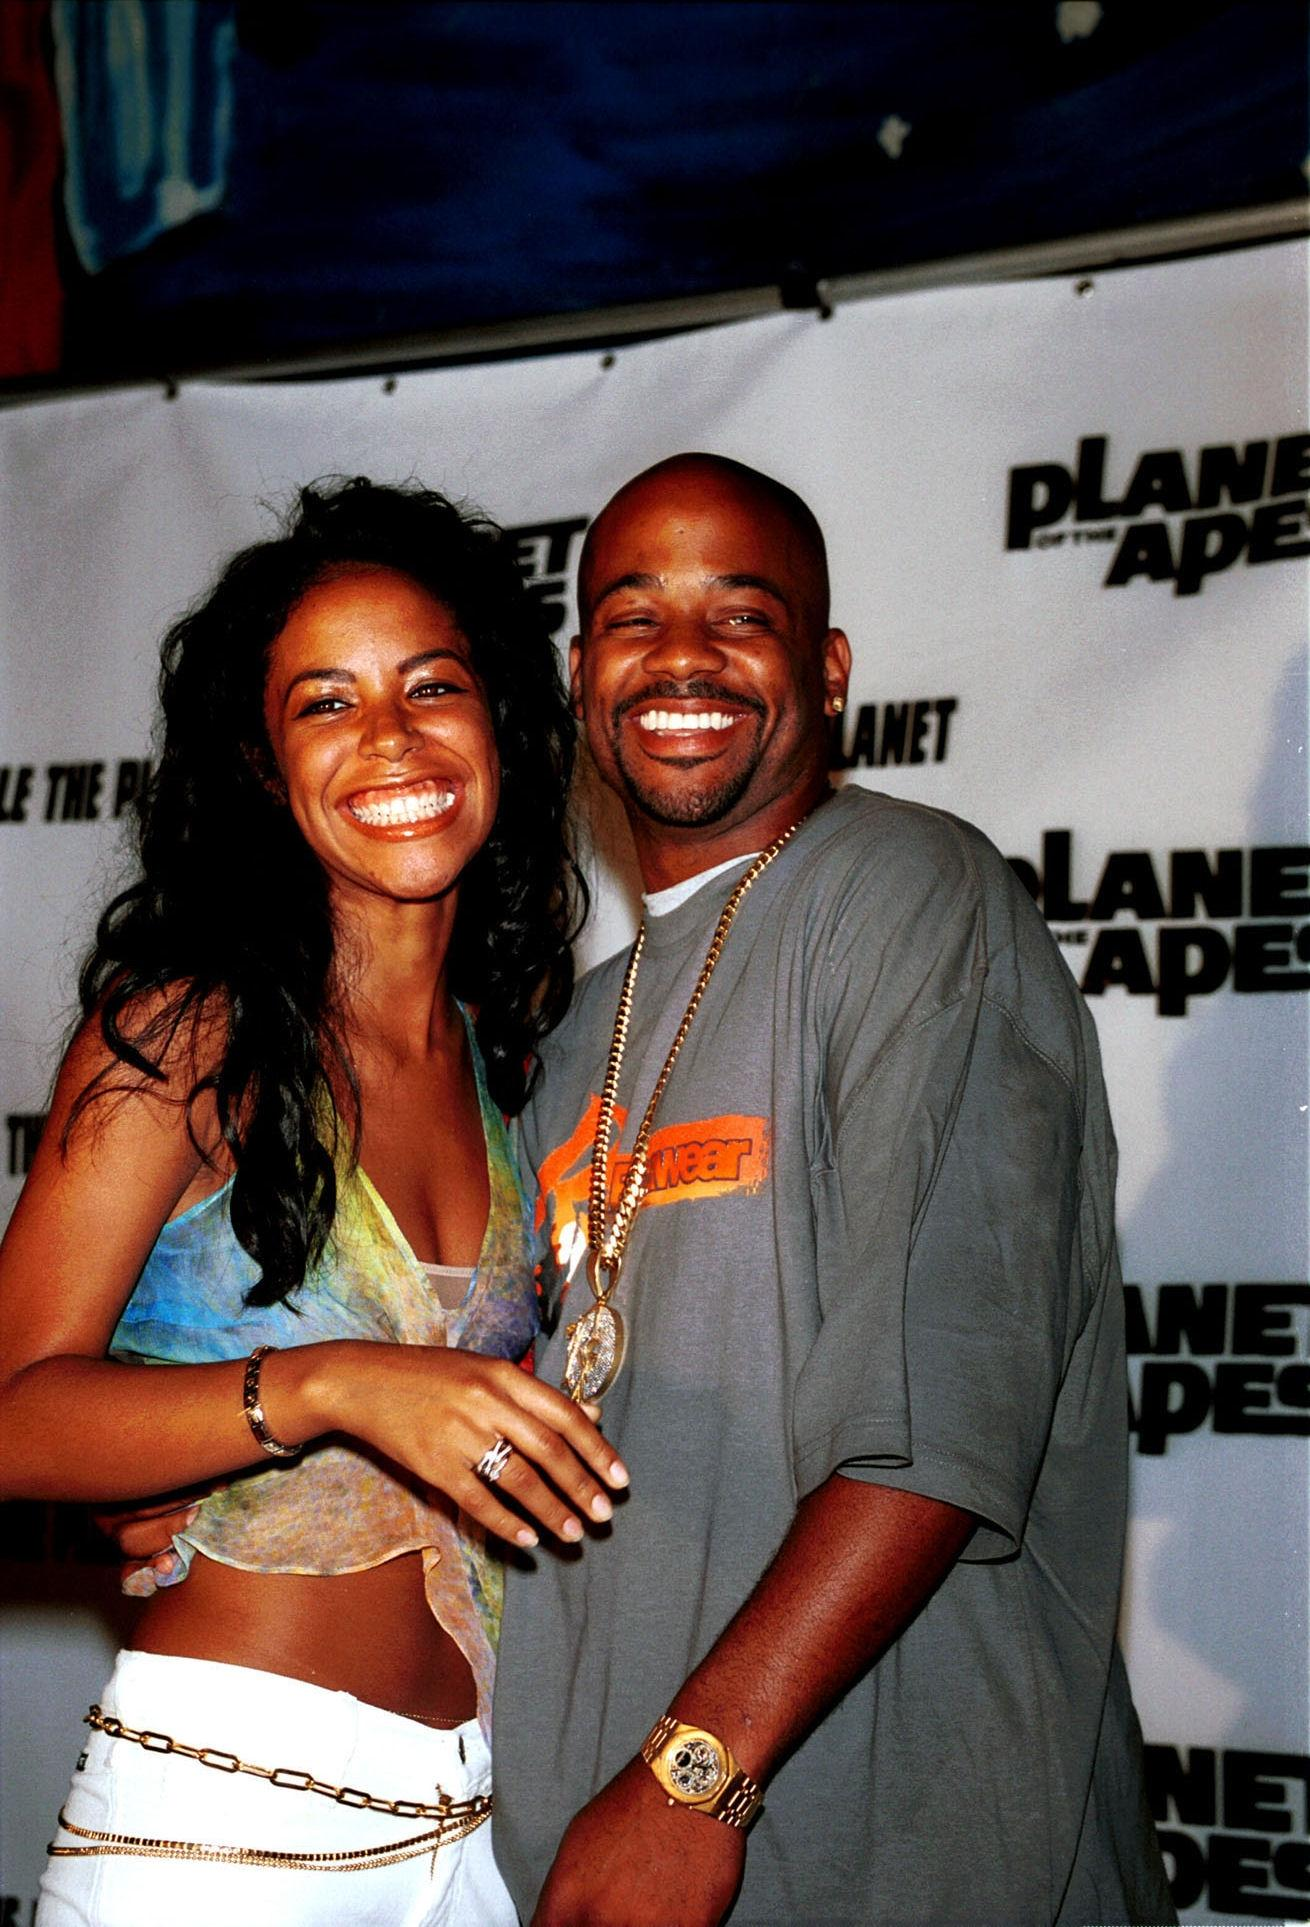 Алия and Damon at the premiere of the' Planet of the Apes' movie